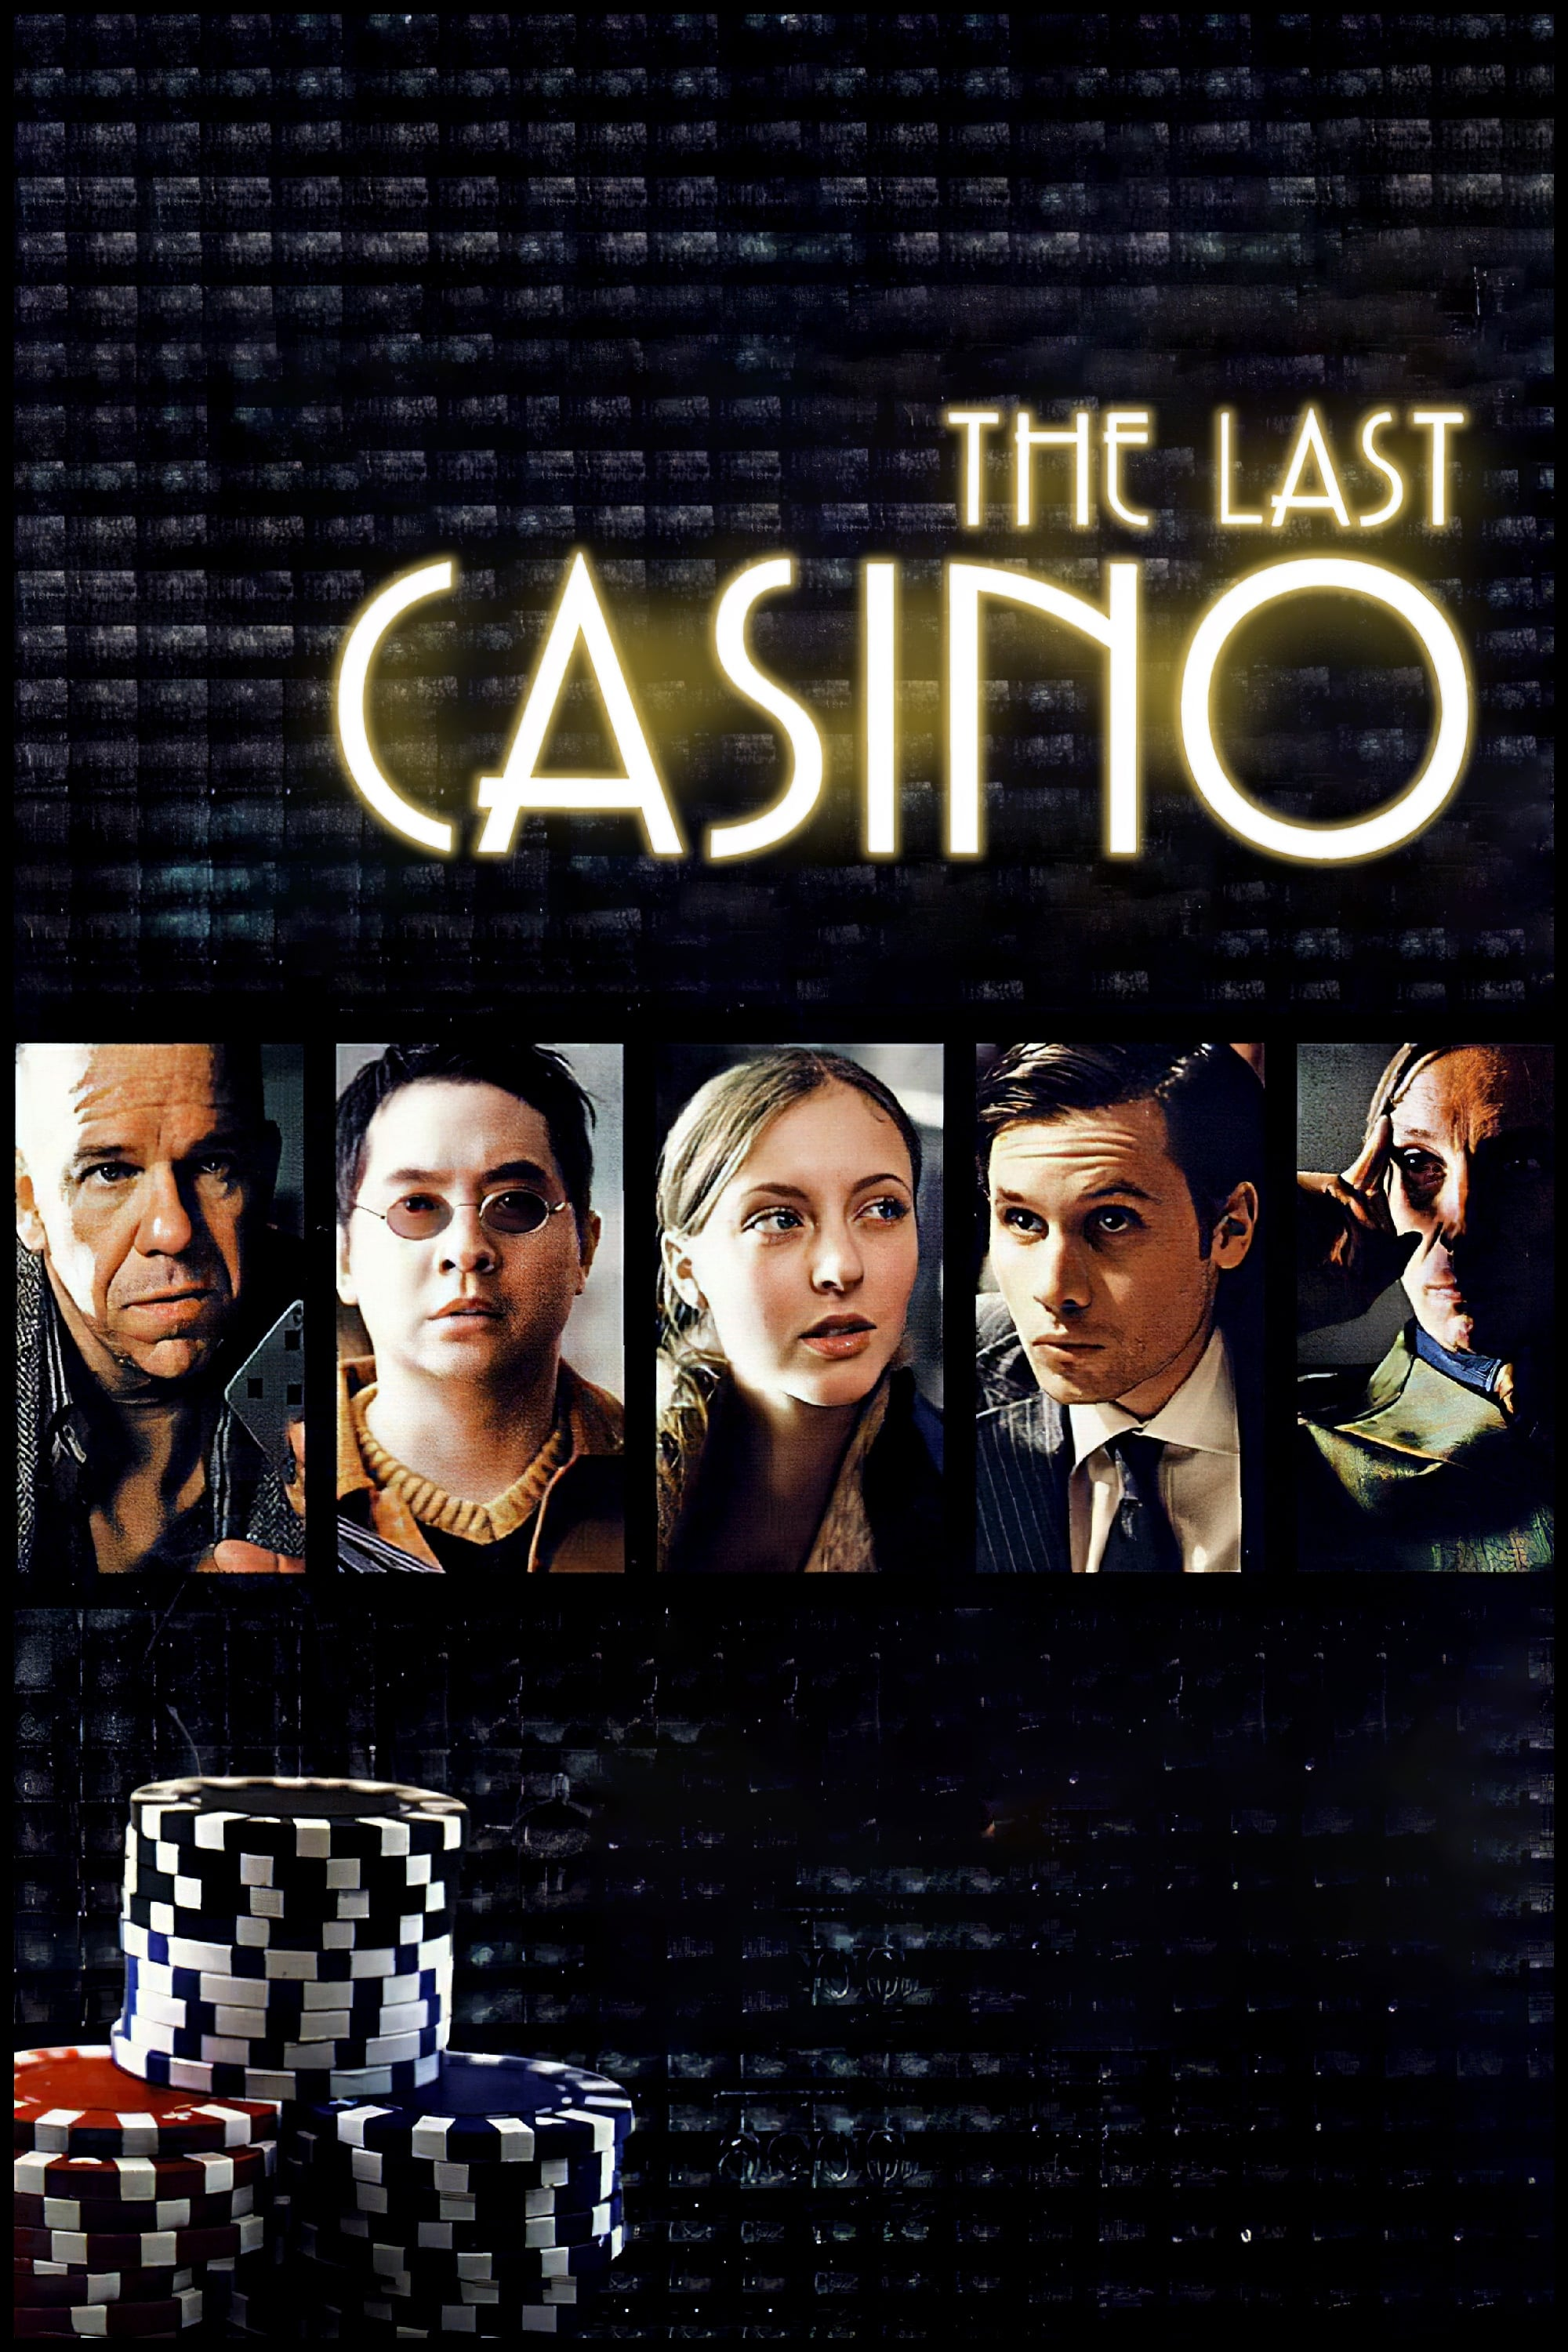 The last casino 21 self ban from casino